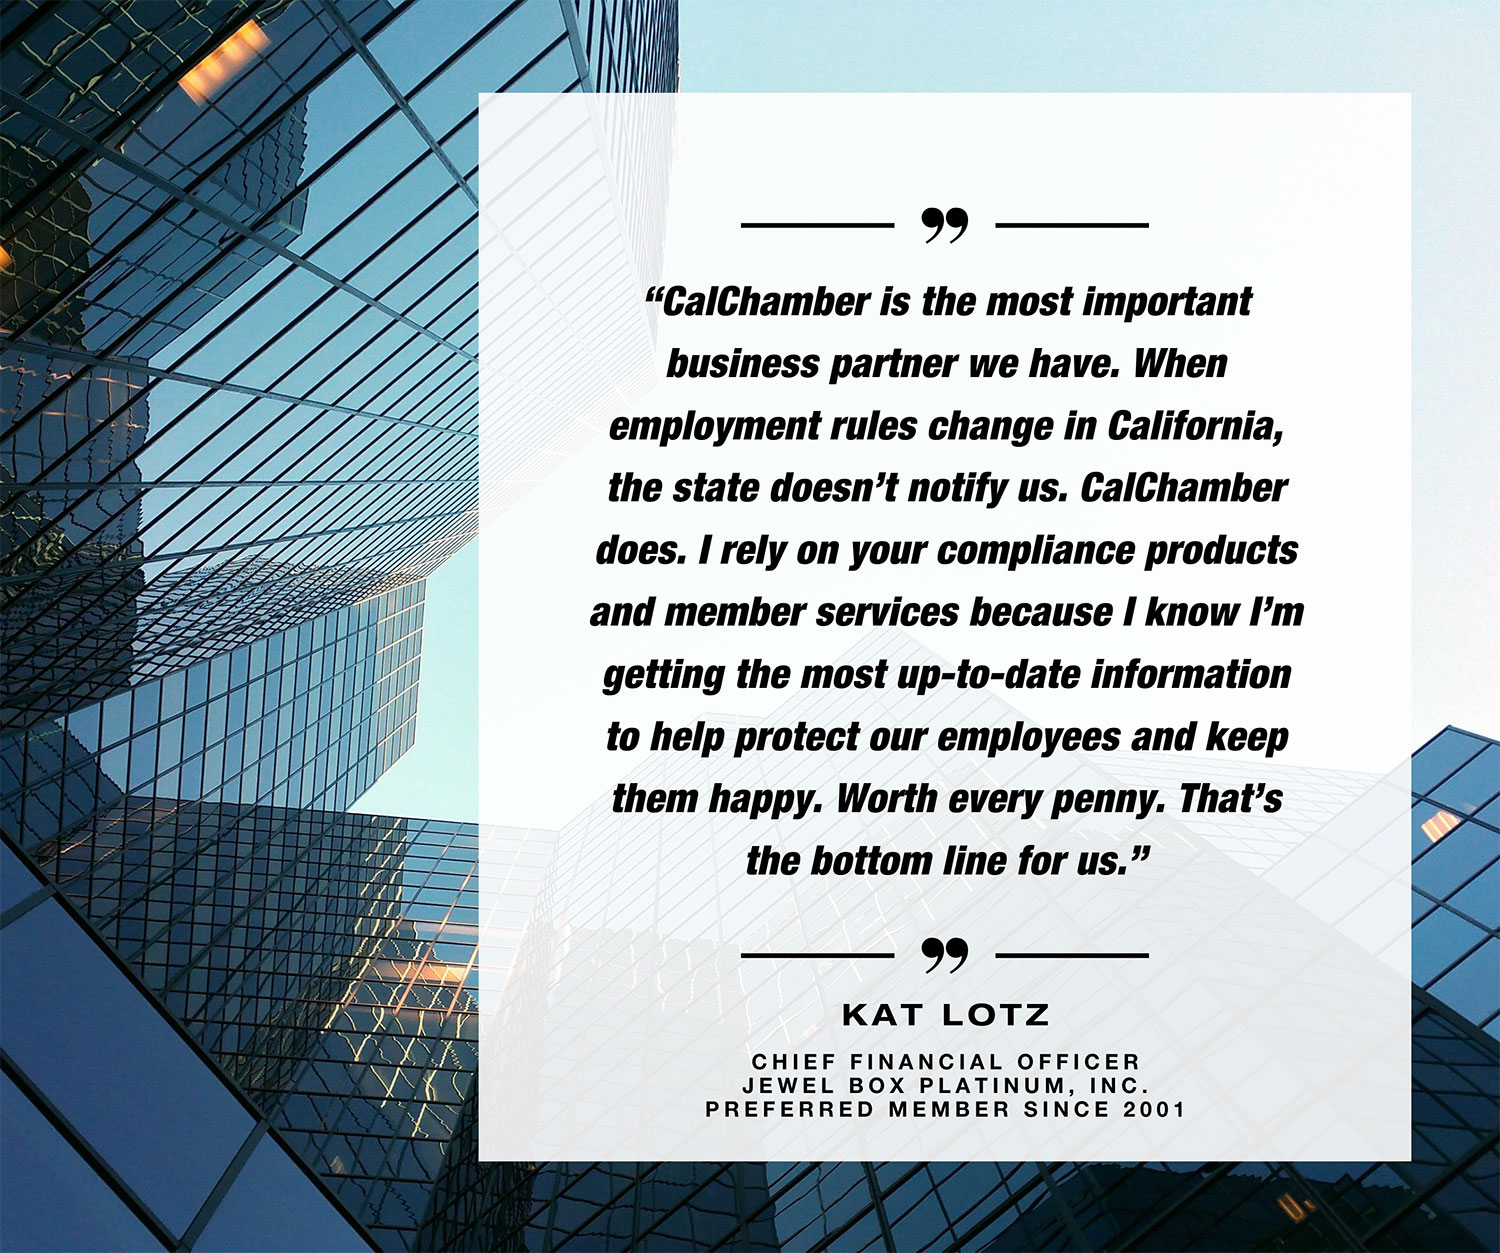 Kat Lotz quote supporting CalChamber